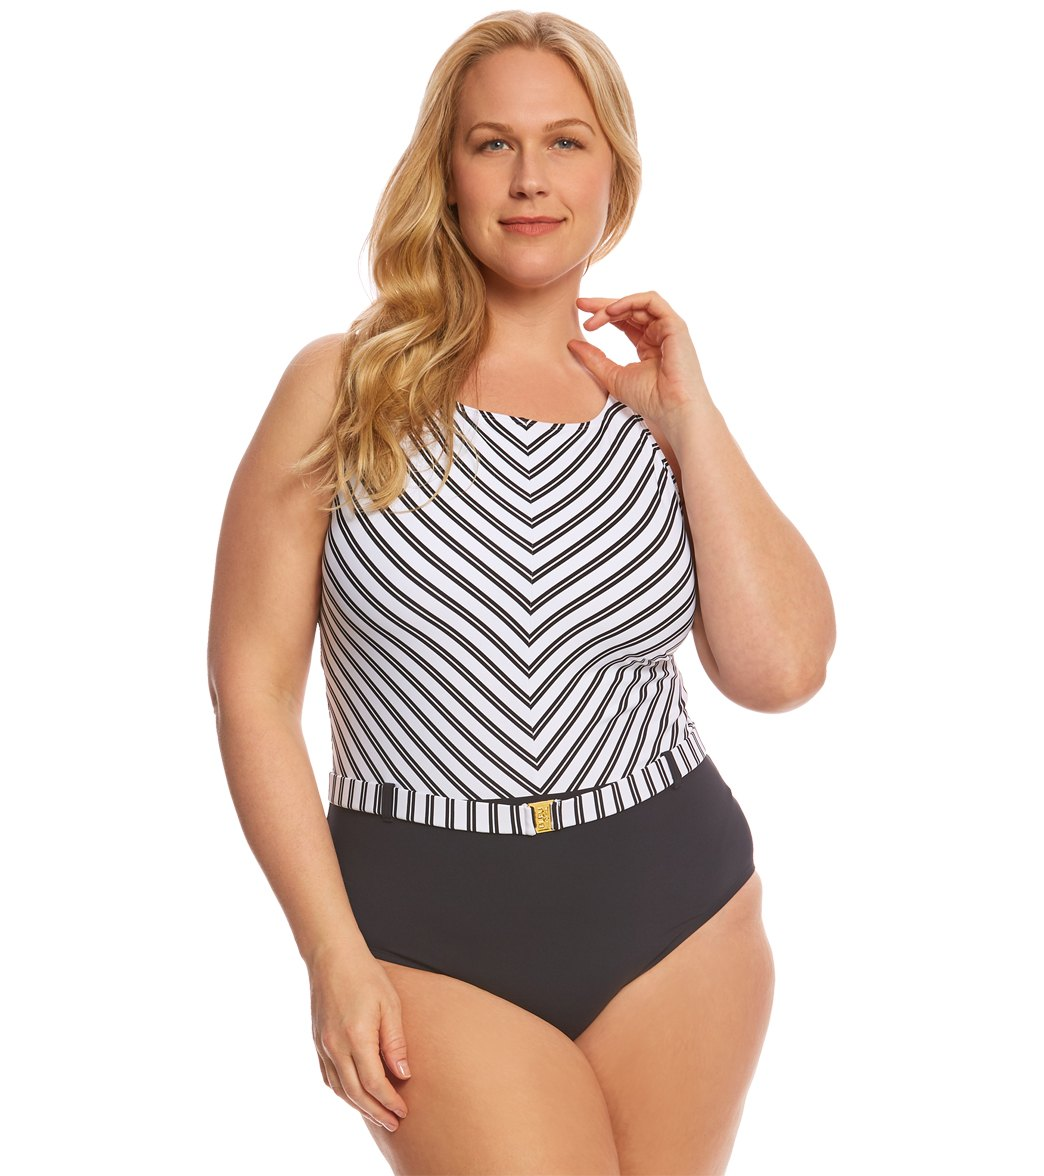 bfacbc189f037 BLEU Rod Beattie Plus Size Cruise Control High Neck X-Back One Piece  Swimsuit at SwimOutlet.com - Free Shipping